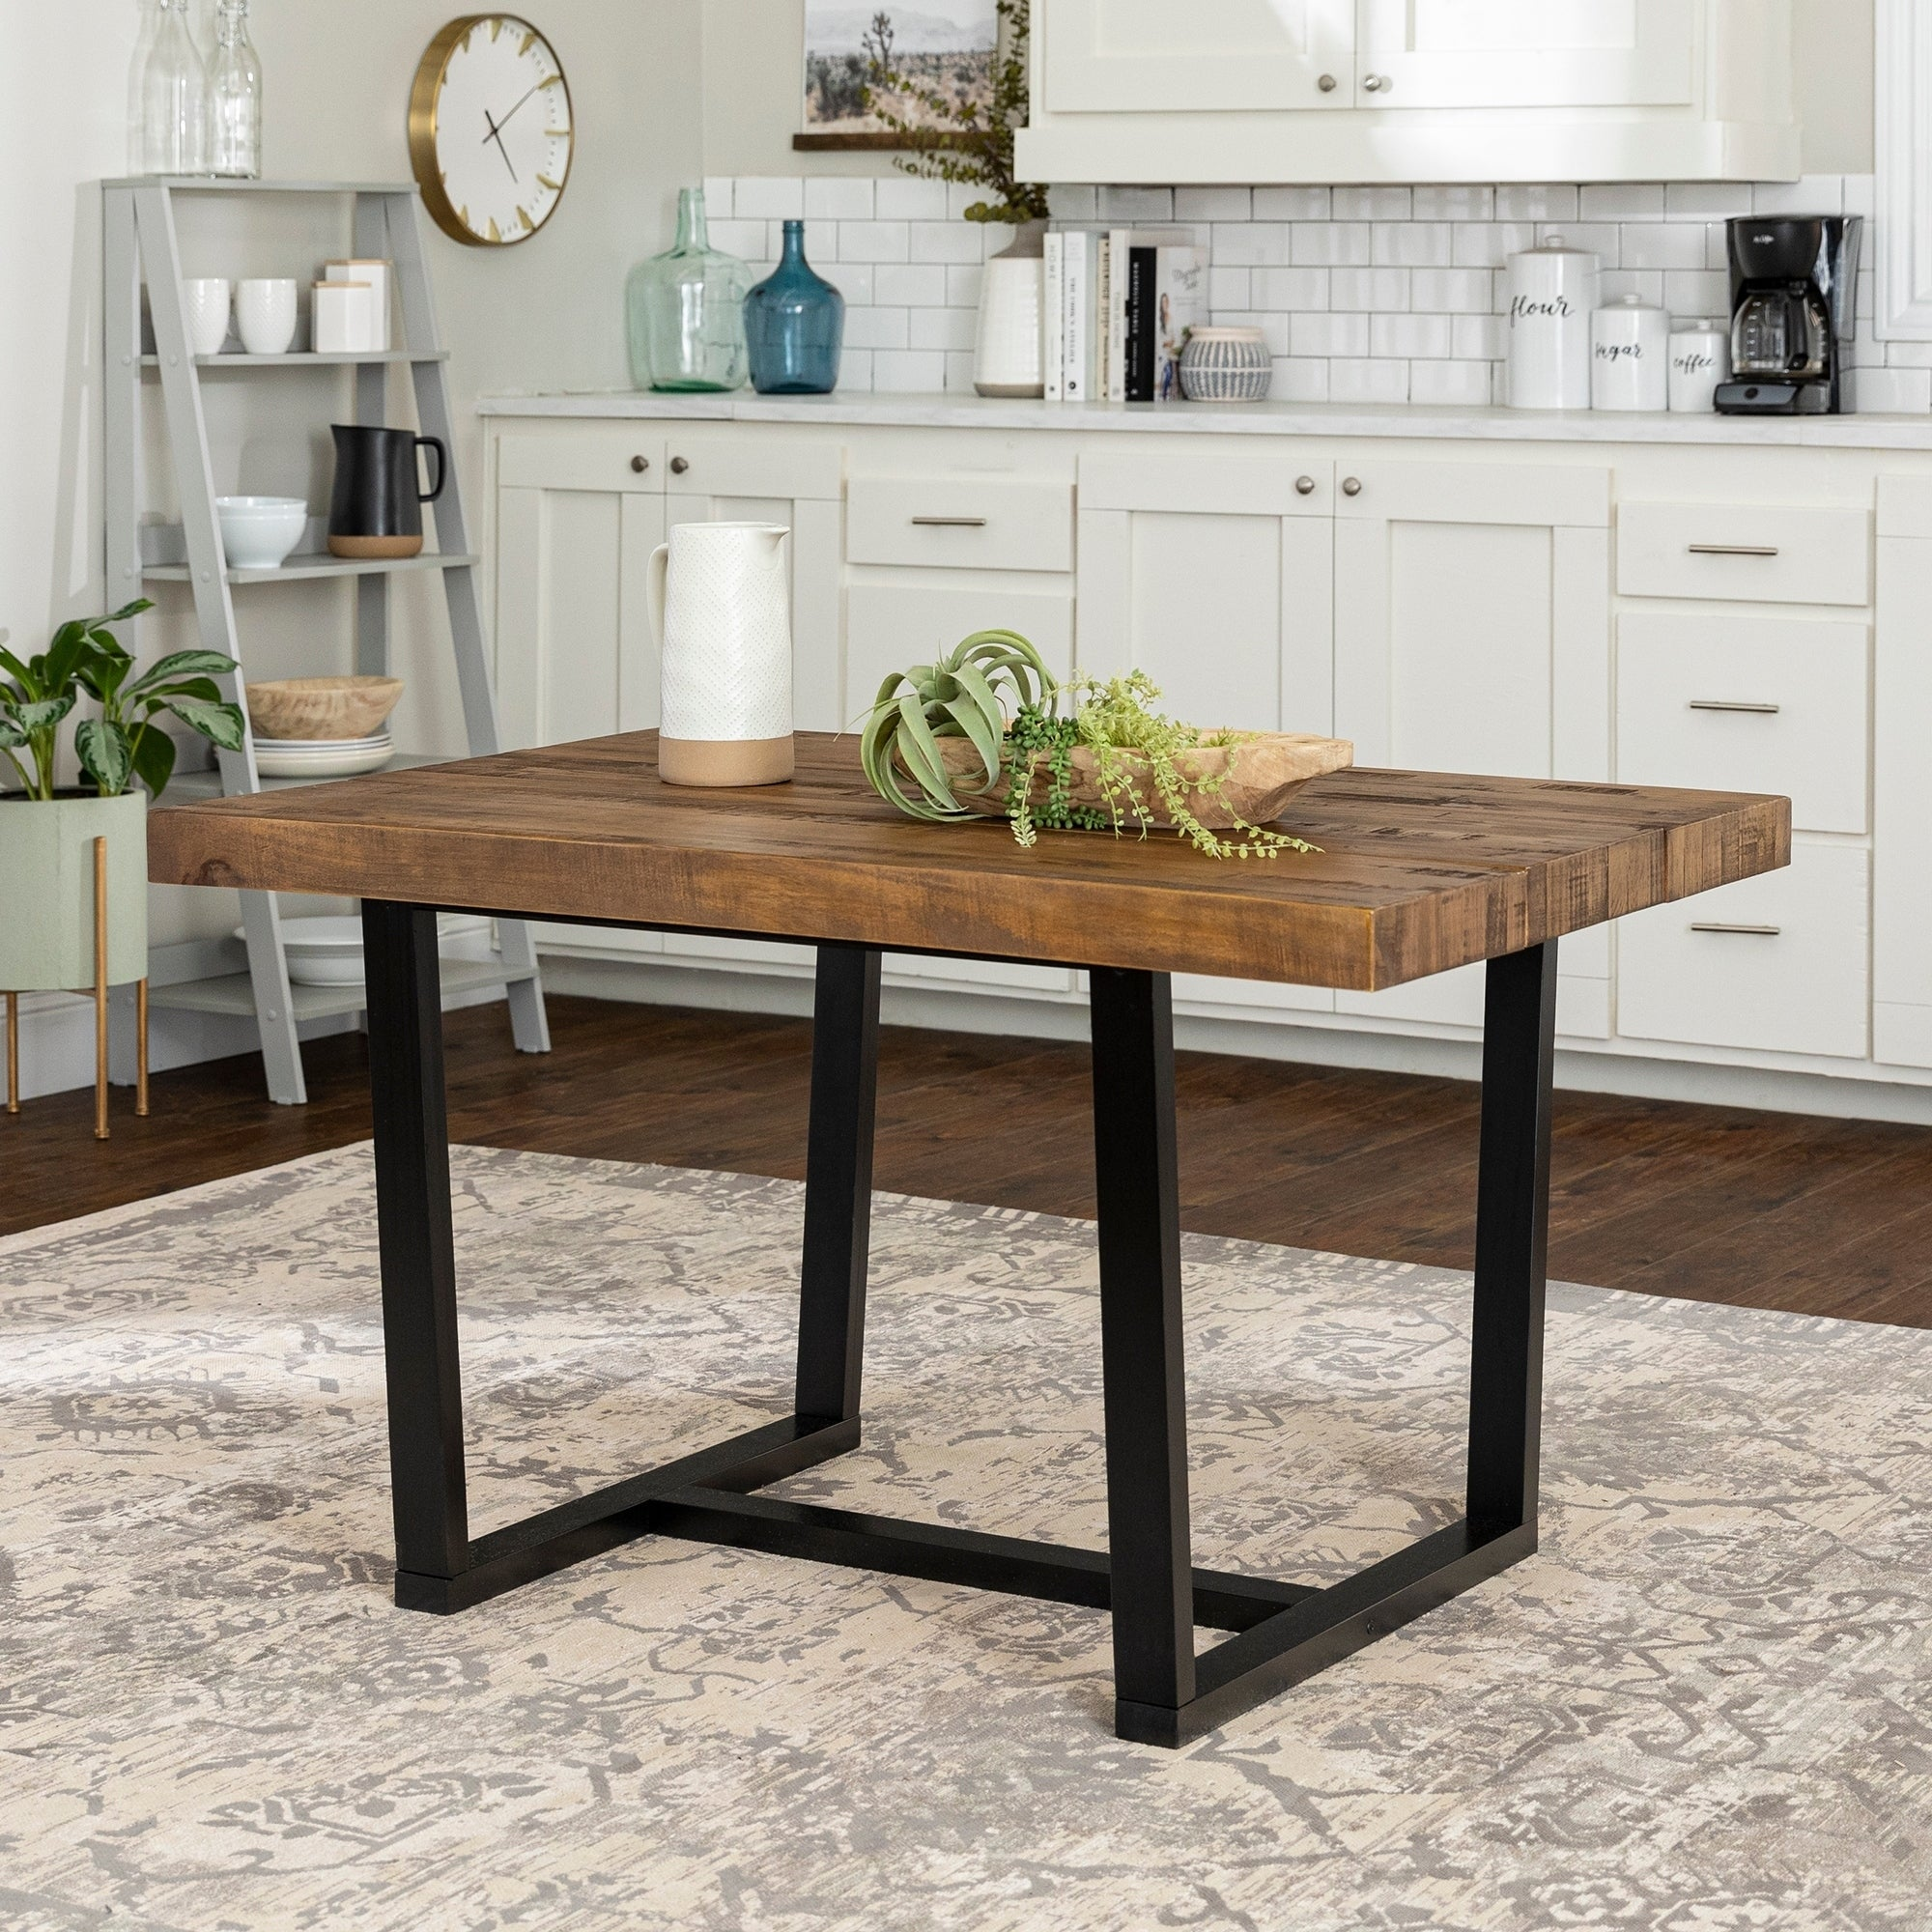 52 Inch Distressed Wood Dining Table